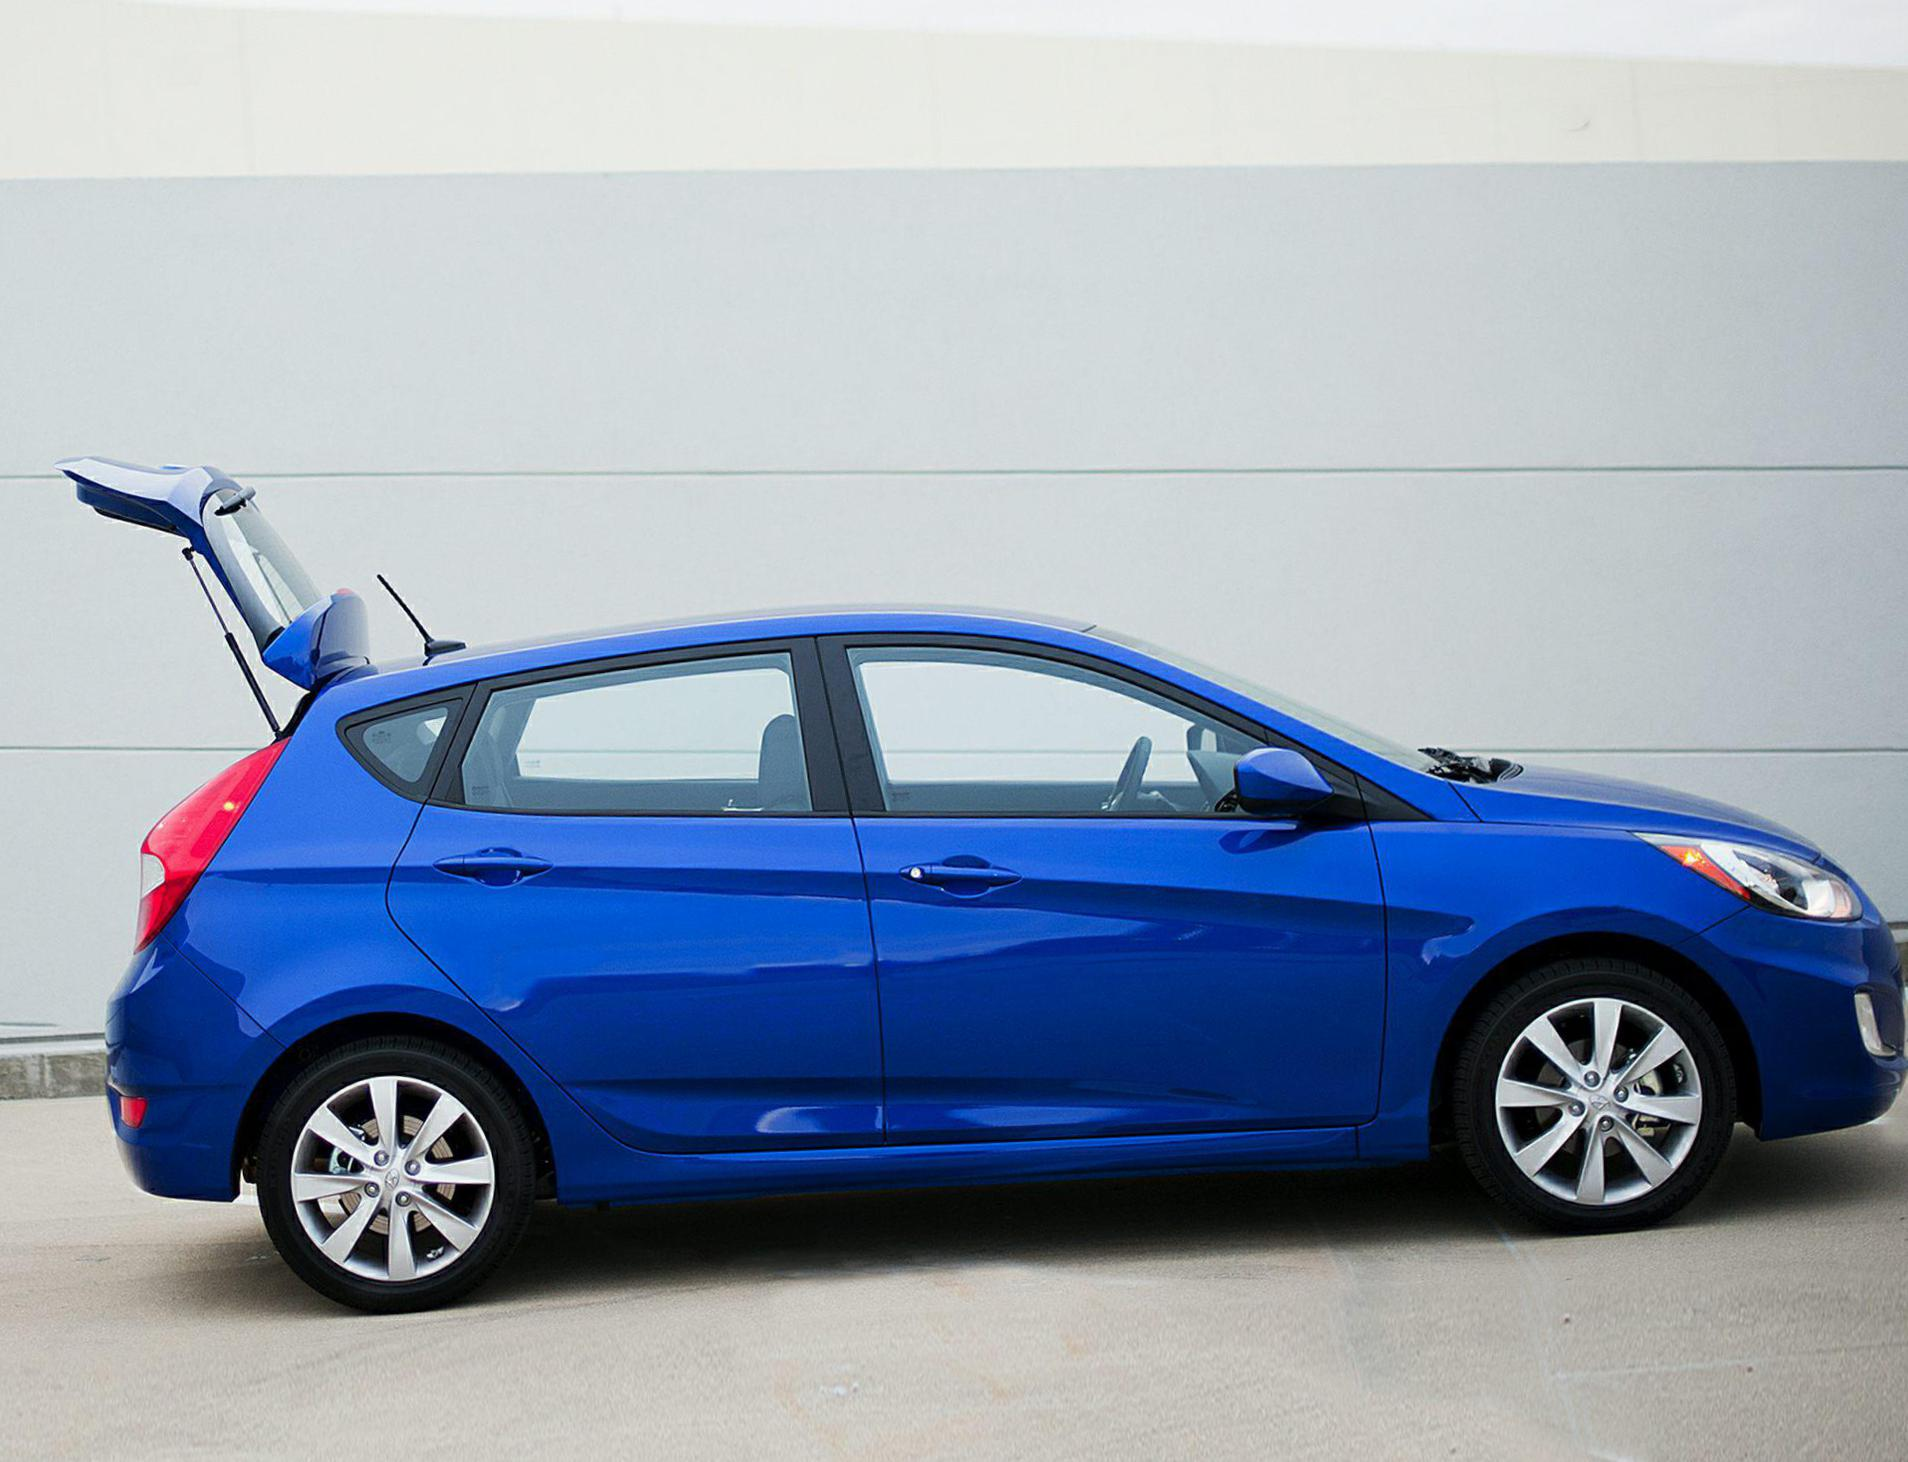 Hyundai Accent Hatchback Specification 2010